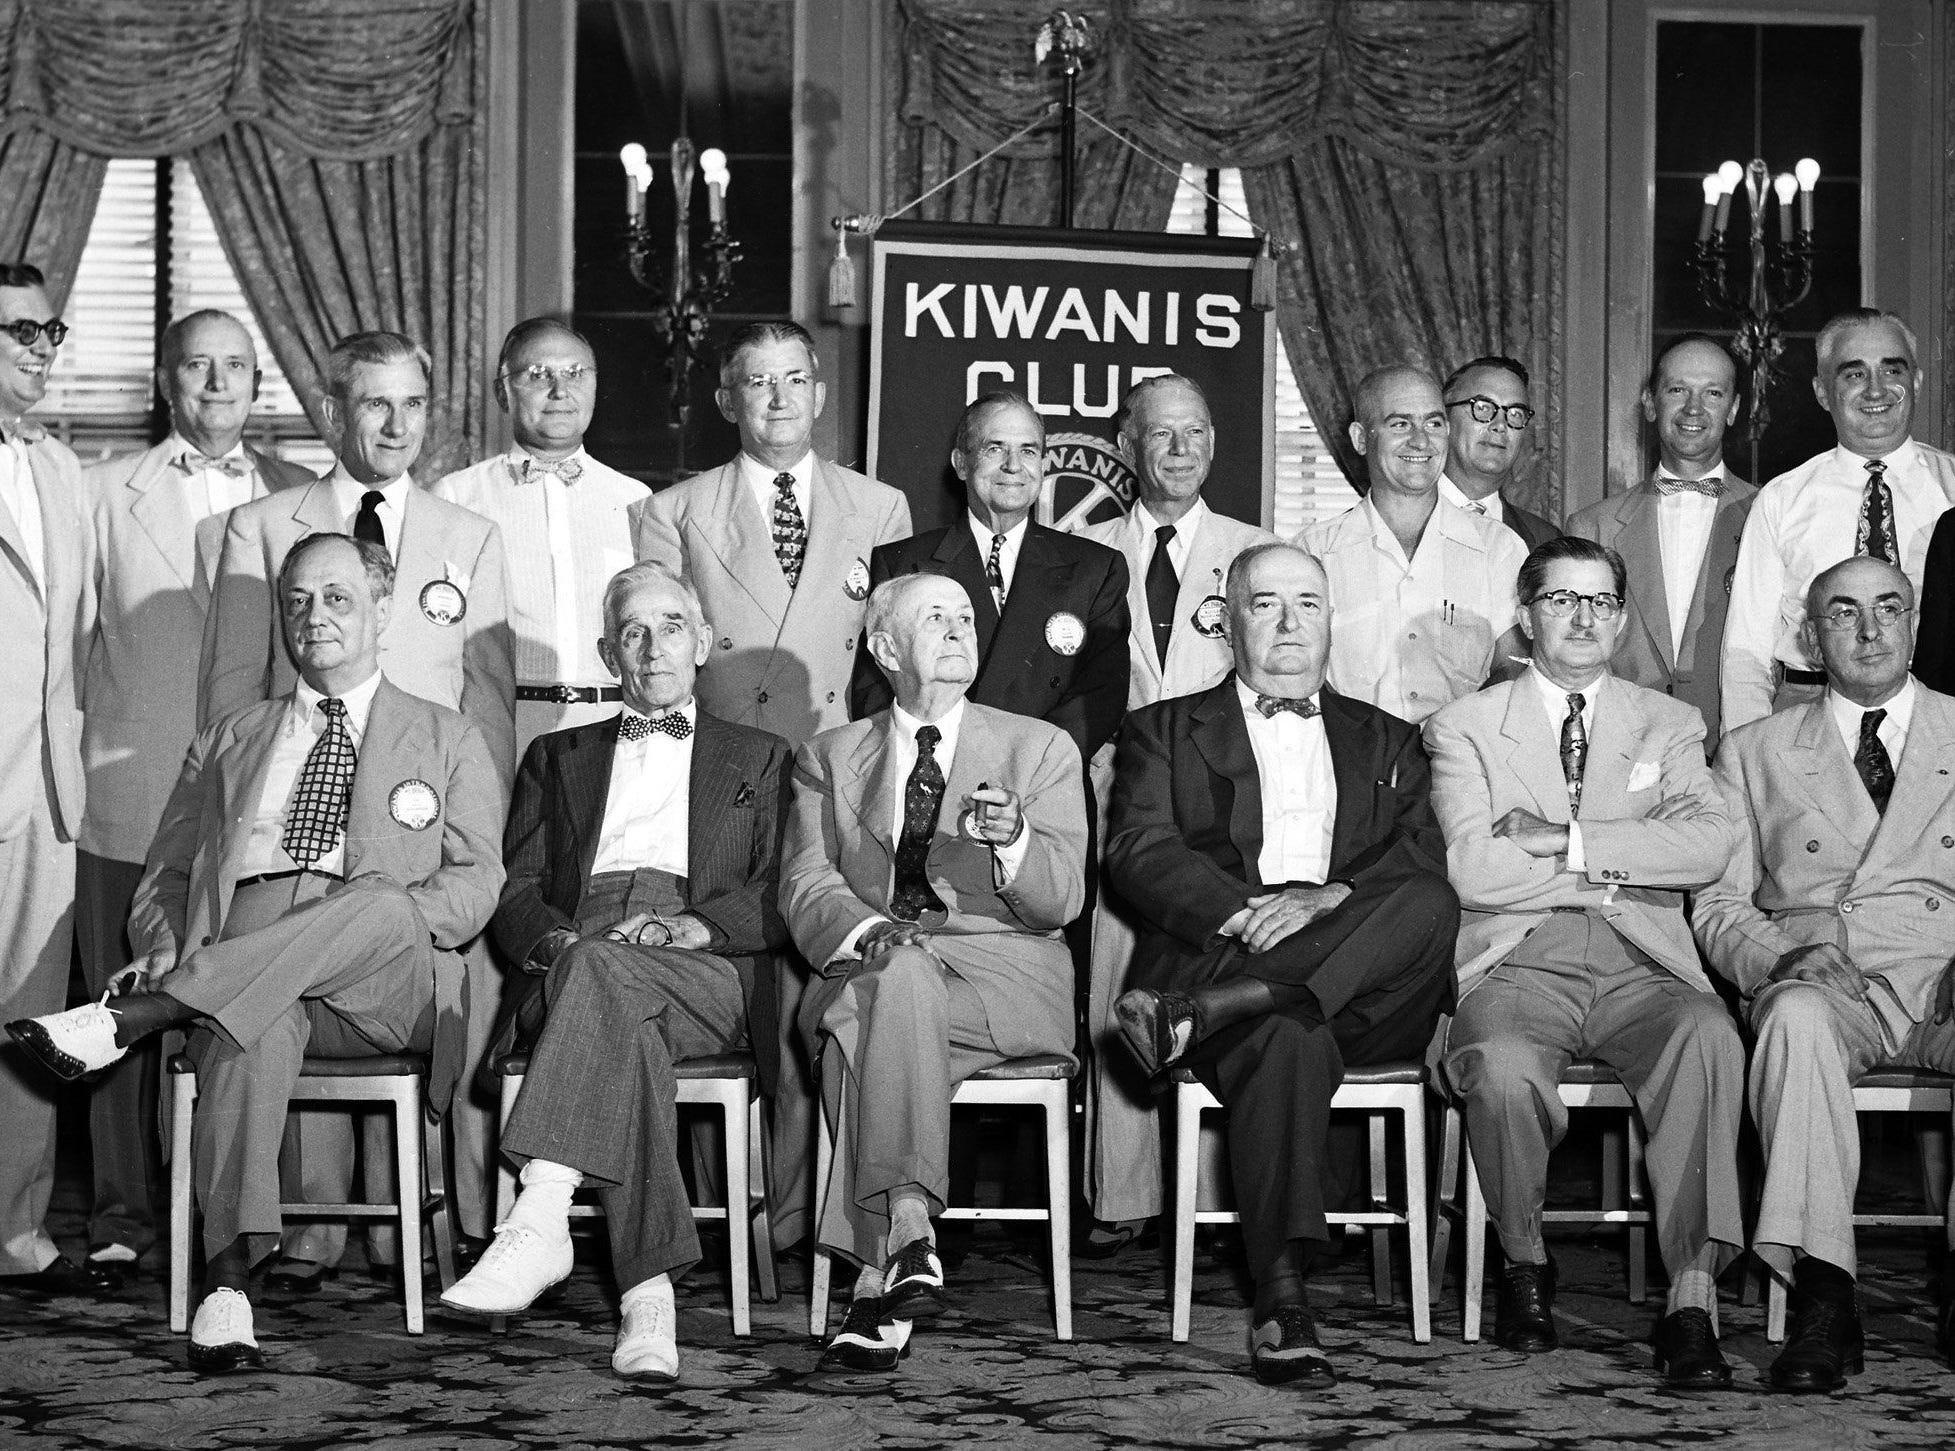 "Memphis Kiwanis Club paid tribute of its past presidents -- the group known affectionately at the ""petrified forest"" -- in an annual fun-filled program at the club luncheon at the Peabody on 15 Aug 1951. The group includes seated from left: Lee Winchester, president in 1918; J.H. Embry, 1921; Walton M. Busteed, 1924; Judge Samuel O. Bates, 1925; Dr. Thomas F. Leatherwood, 1929; and Dr. R.S. Vinsant, 1931. Standing from left: Raymond Skinner, 1933; Frank M. Grout, 1934; Kenneth C. Larkey, 1937, Leonard H. Dille, 1940; O.K. Earp, 1941, W.L. Sharpe, 1943, Russell E. Reeves, 1944, R.A. Trippeer, 1945; W.W. Scott, 1951; W. Arch Gaylor, 1946, C.W. Rosselot, 1948; and Blanchard S. Tual, 1949."